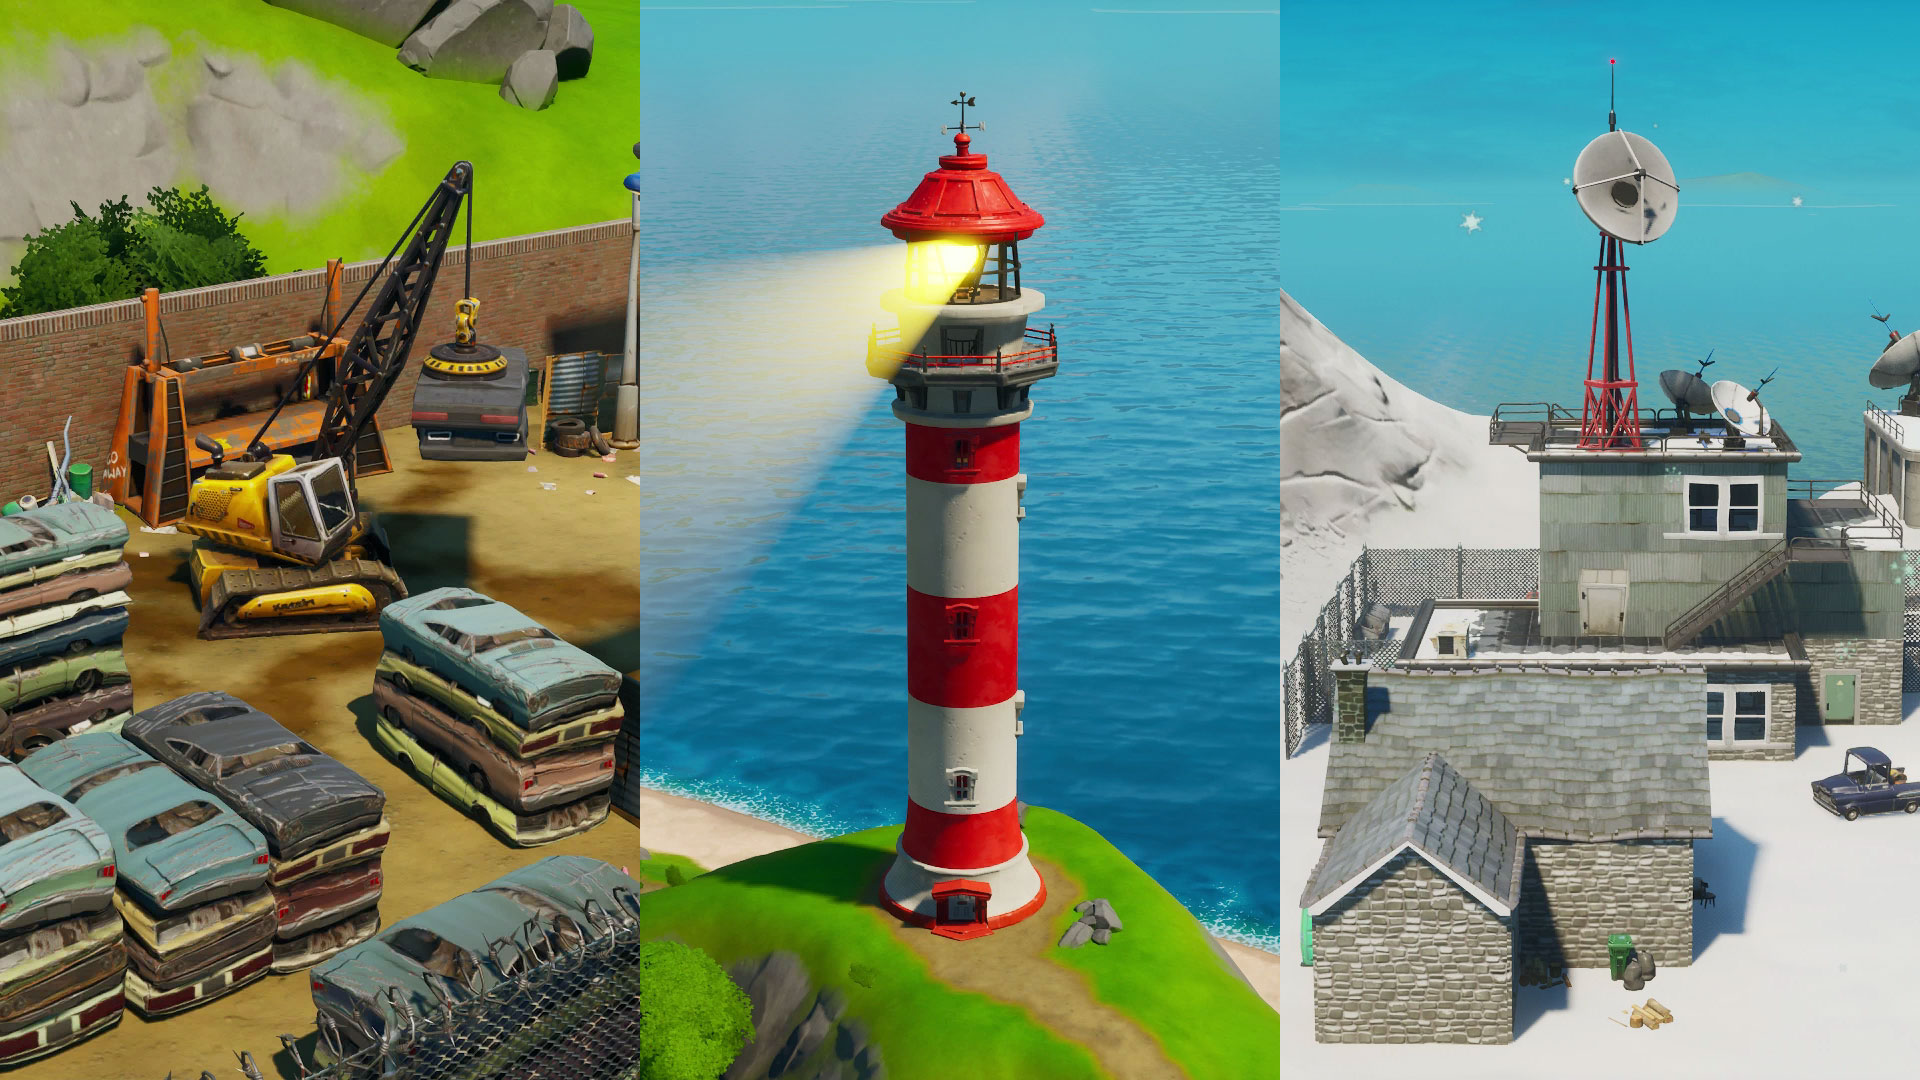 Fortnite Compact Cars Lockie S Lighthouse And Weather Station Locations Where To Dance For The Forged In Slurp Challenge Gamesradar